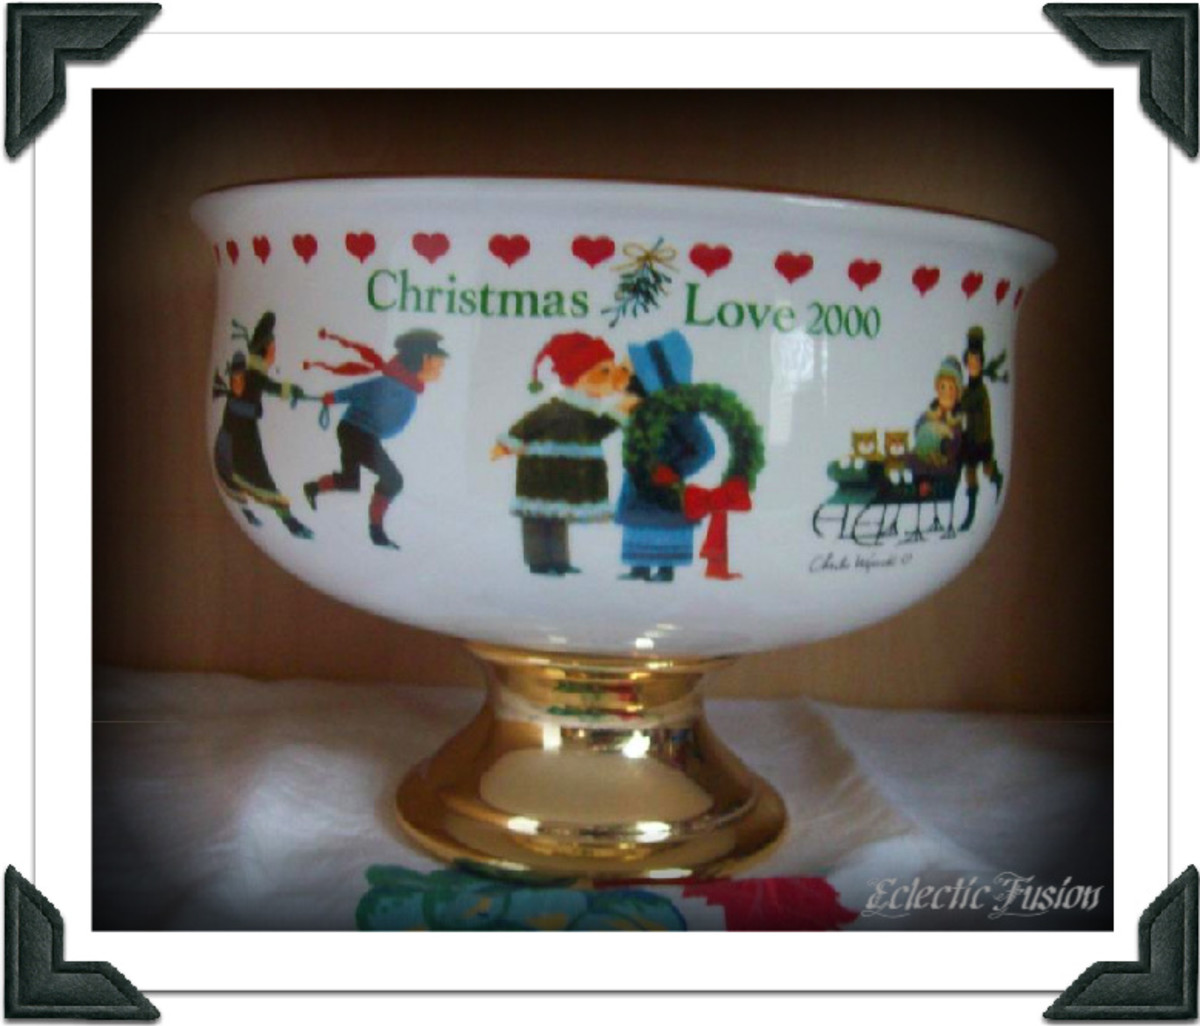 One of the last Christmas presents my mother ever gave to me. She didn't fill it with flowers, but with Andes Creme de Menthe and Andes Cherry Jubilee mints. That bowl was full!